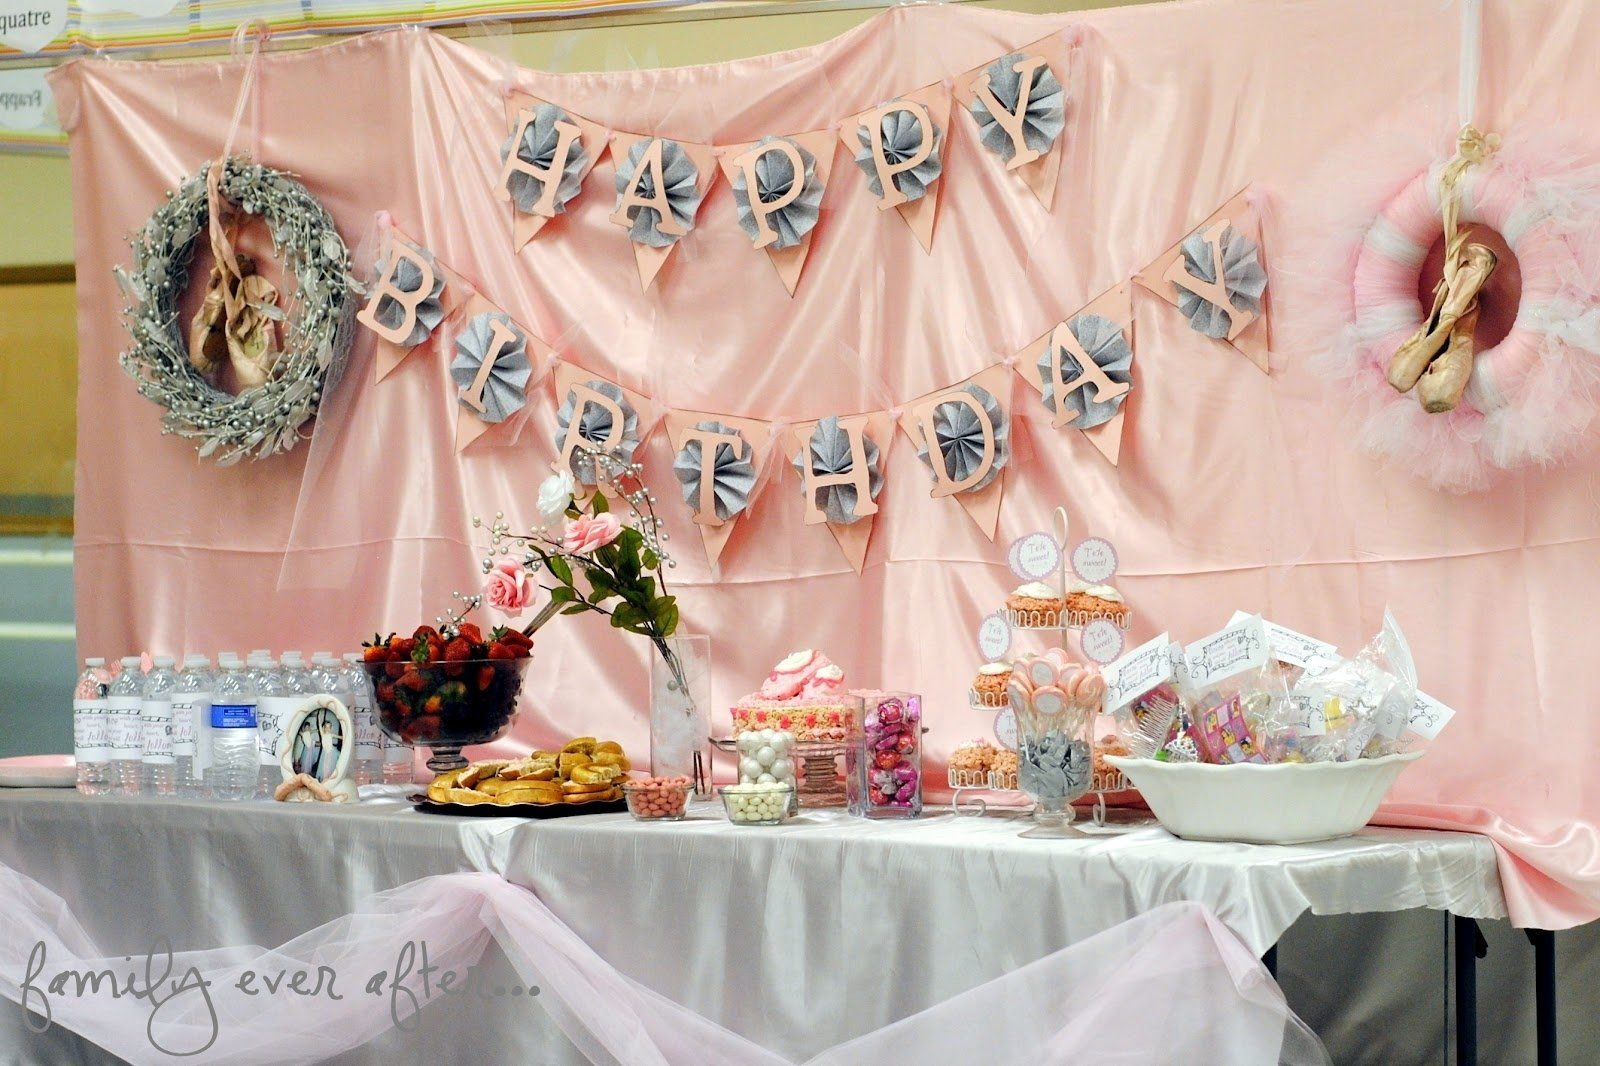 10 Nice Birthday Party Ideas For Teenage Girls 50 birthday party themes for girls i heart nap time 22 2020